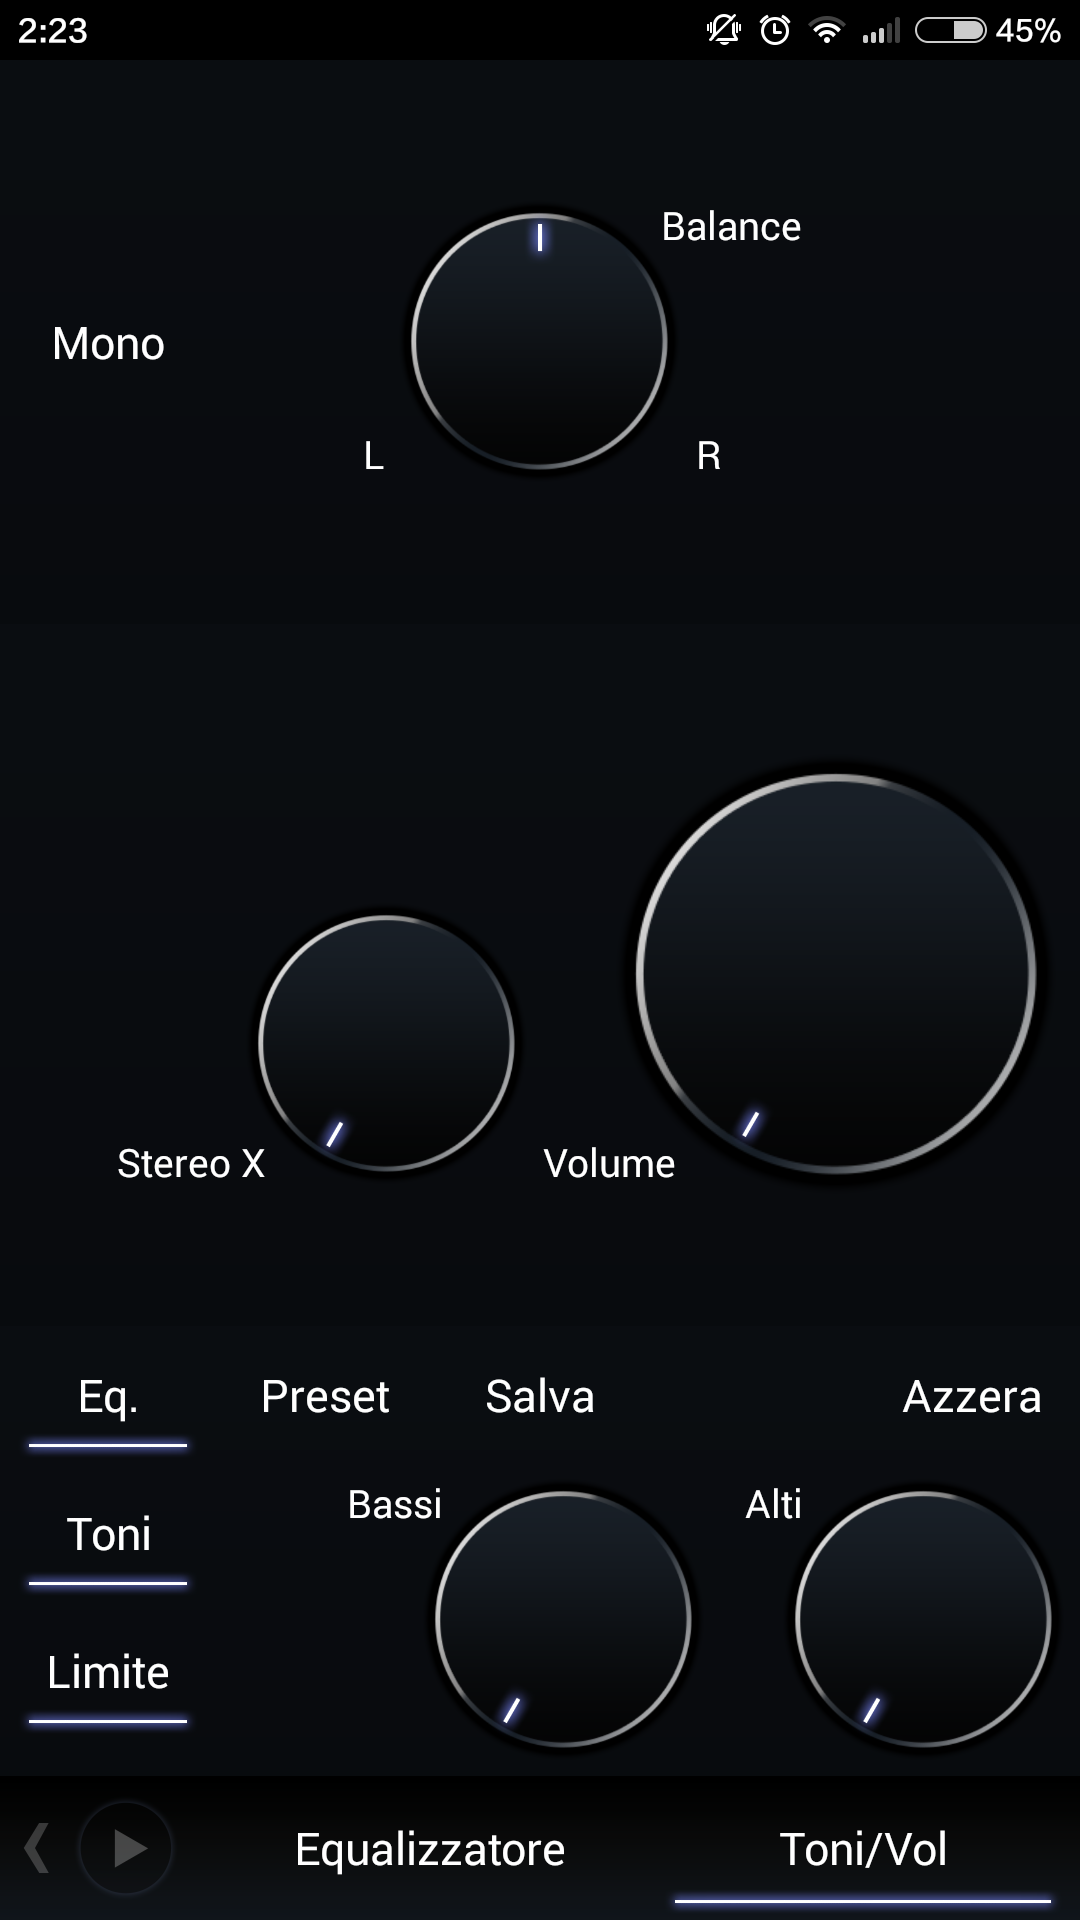 Screenshot_com.maxmpz.audioplayer_2015-10-02-02-23-24